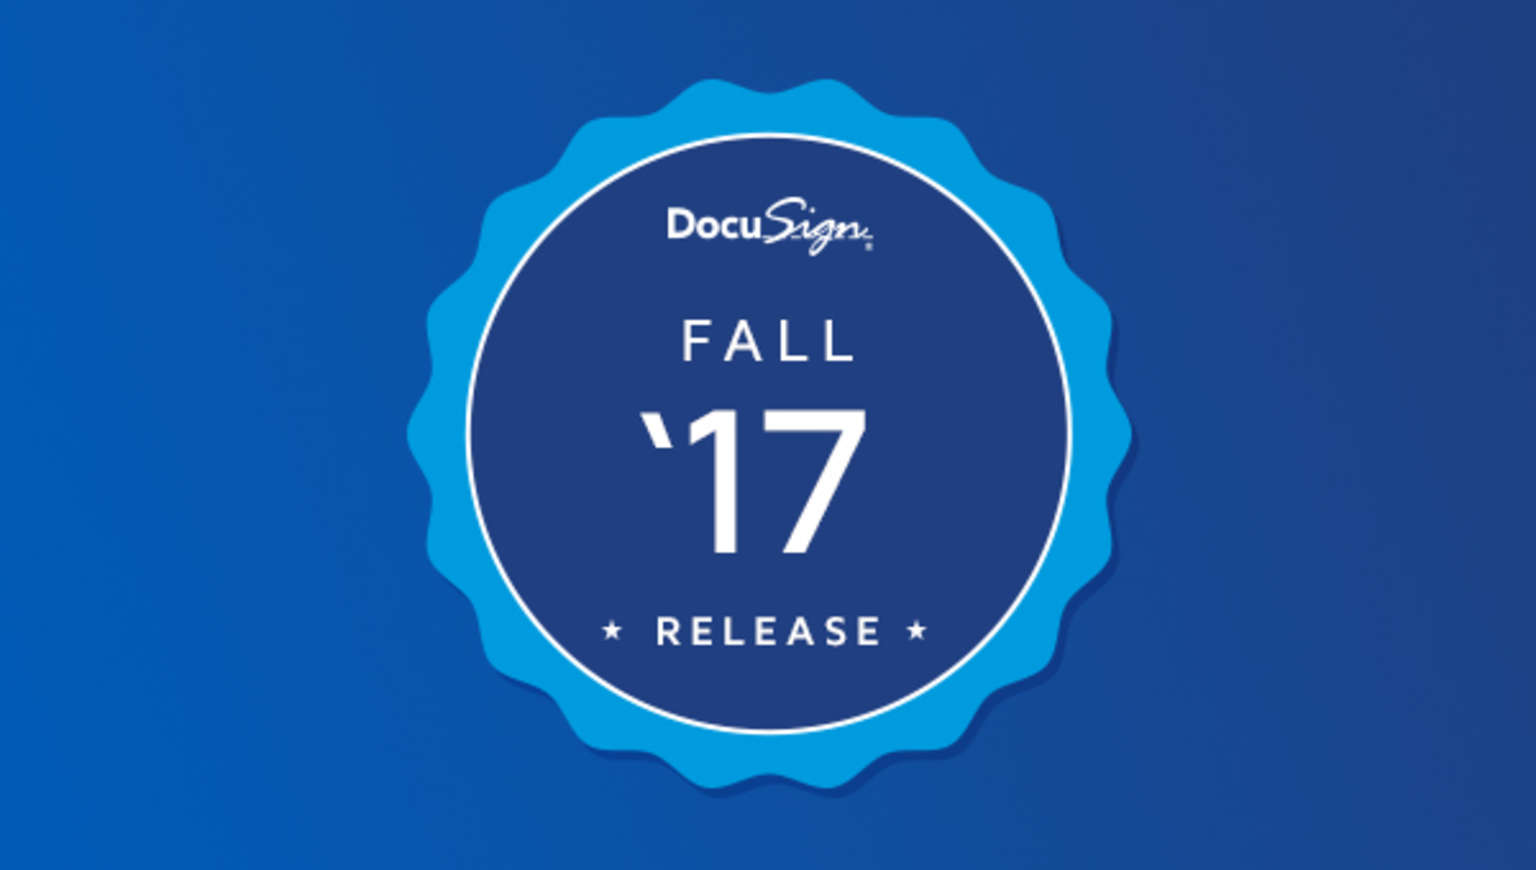 Access the new comments feature with the latest DocuSign release